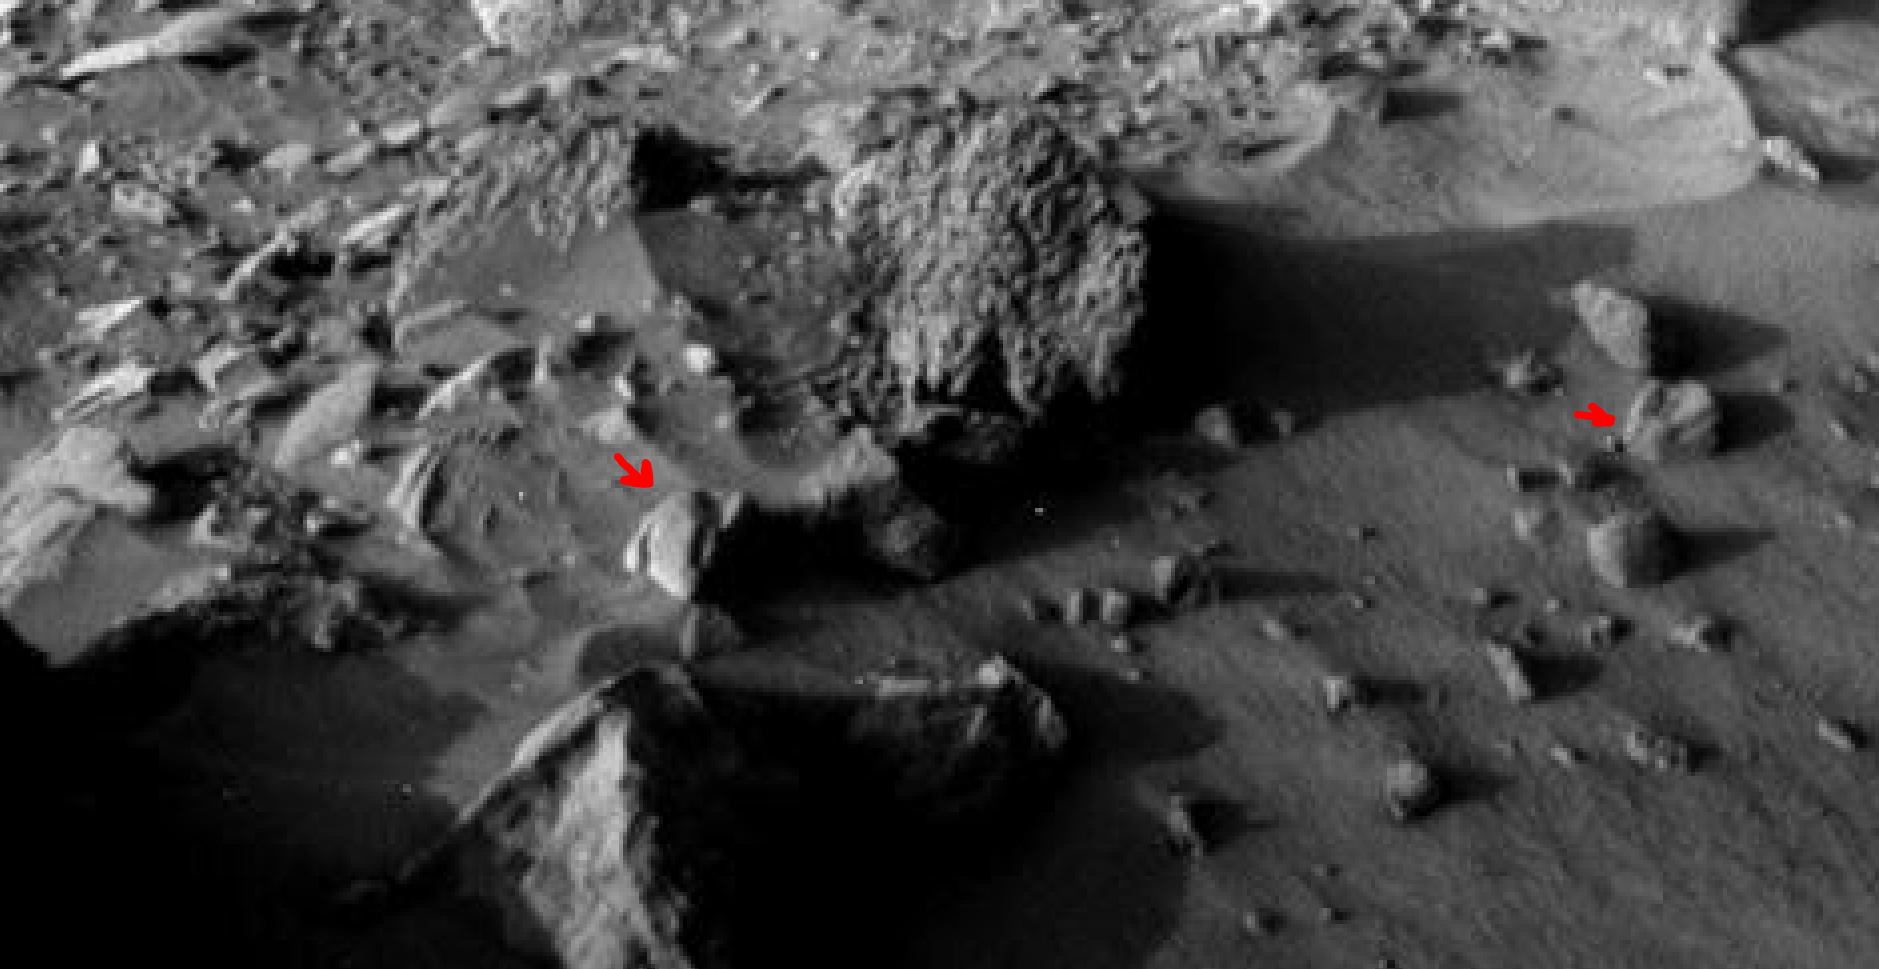 mars sol 1405 anomaly artifacts 17a was life on mars